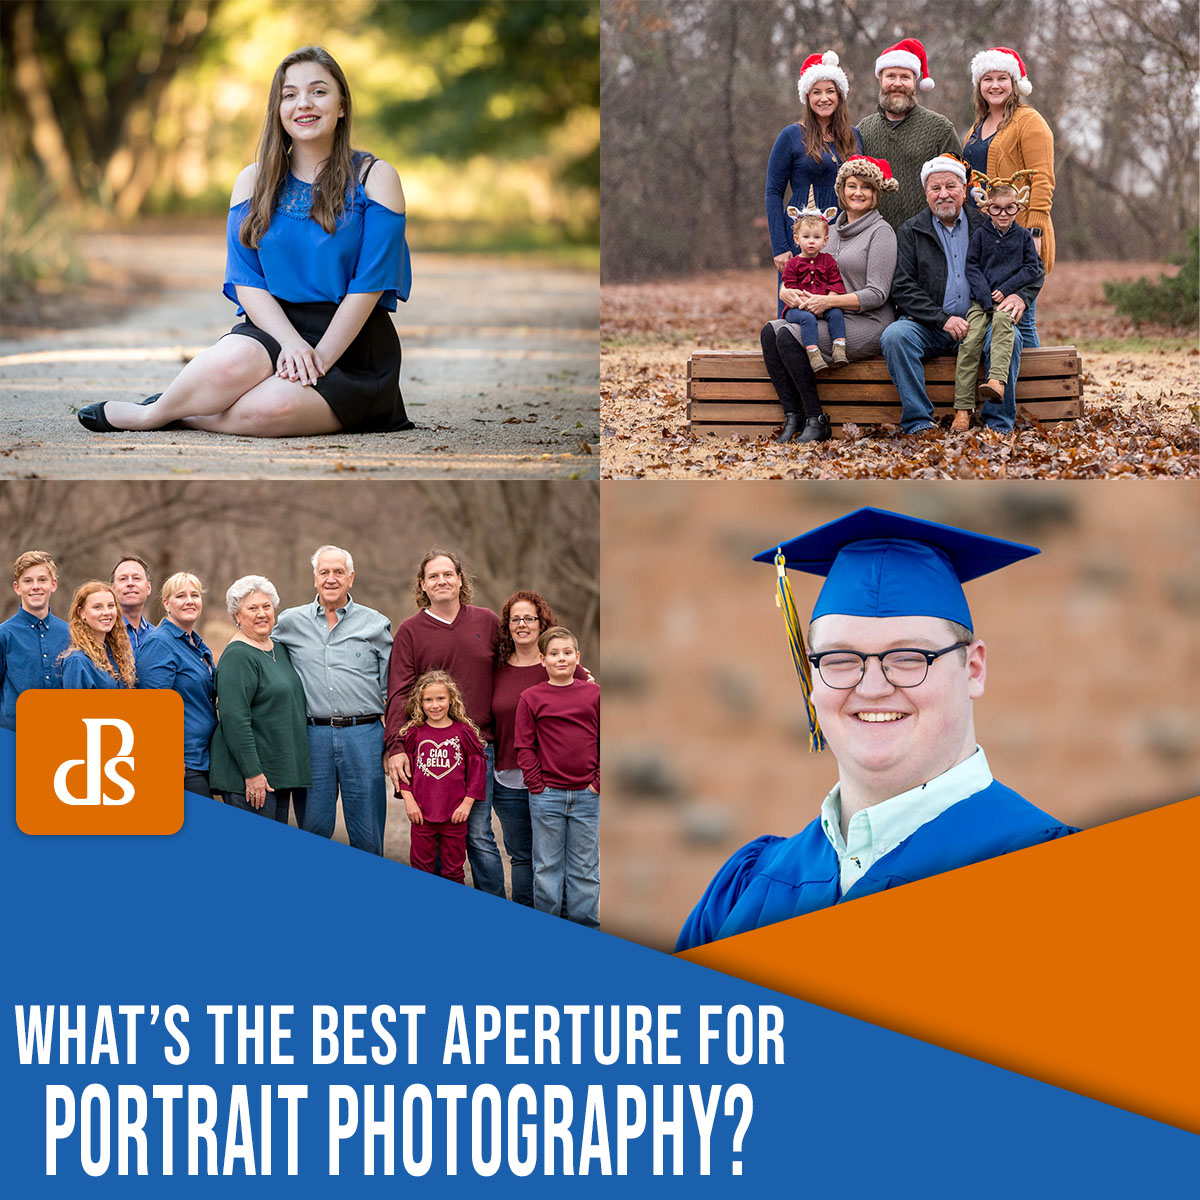 the best aperture for portraits